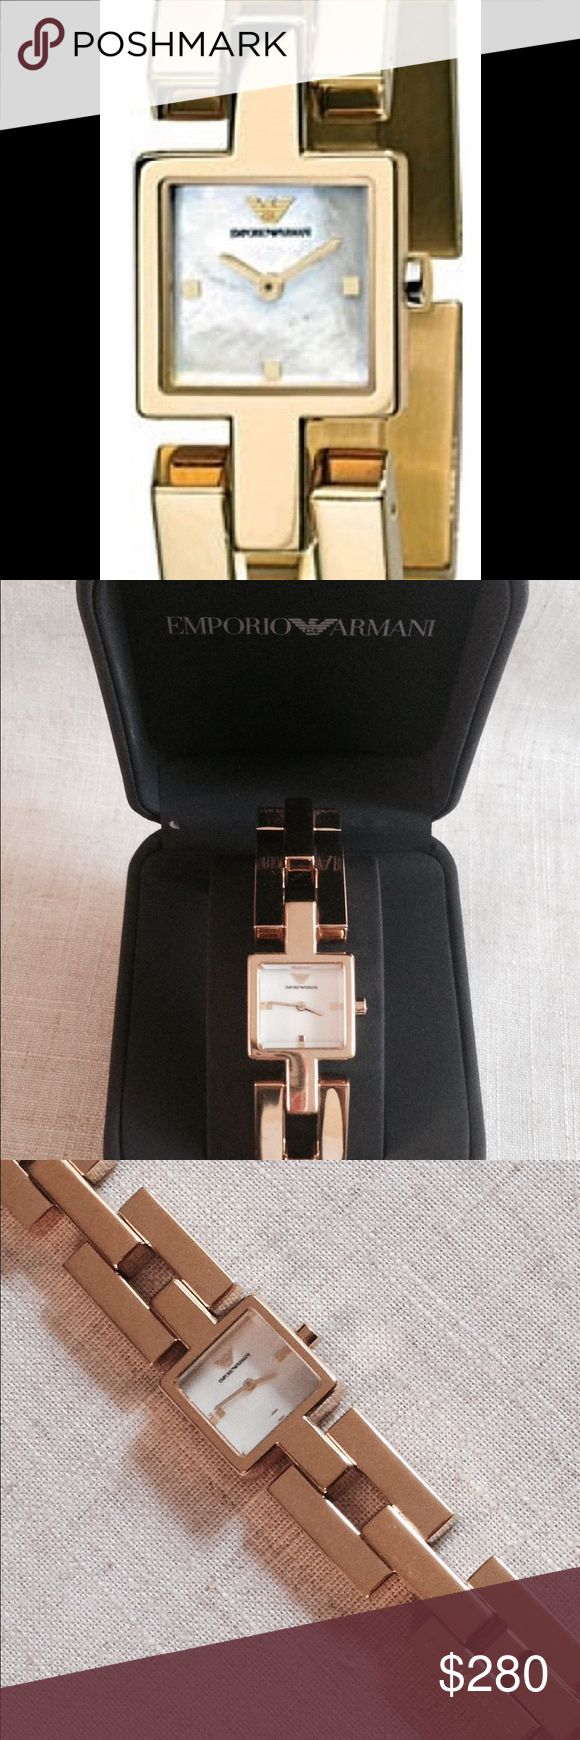 Emporio Armani Classic Gold Ladies Watch. Emporio Armani Ladies Designer Fashion watch. AR 5733  Prevision Quartz Movement, White Mother of Pearl dial accented with gold tone hands& Armani Eagle logo. 20mm x 20mm  Gold Plated Stainless Steel case. 30m water resistance.  With Armani Watch Box Emporio Armani Accessories Watches